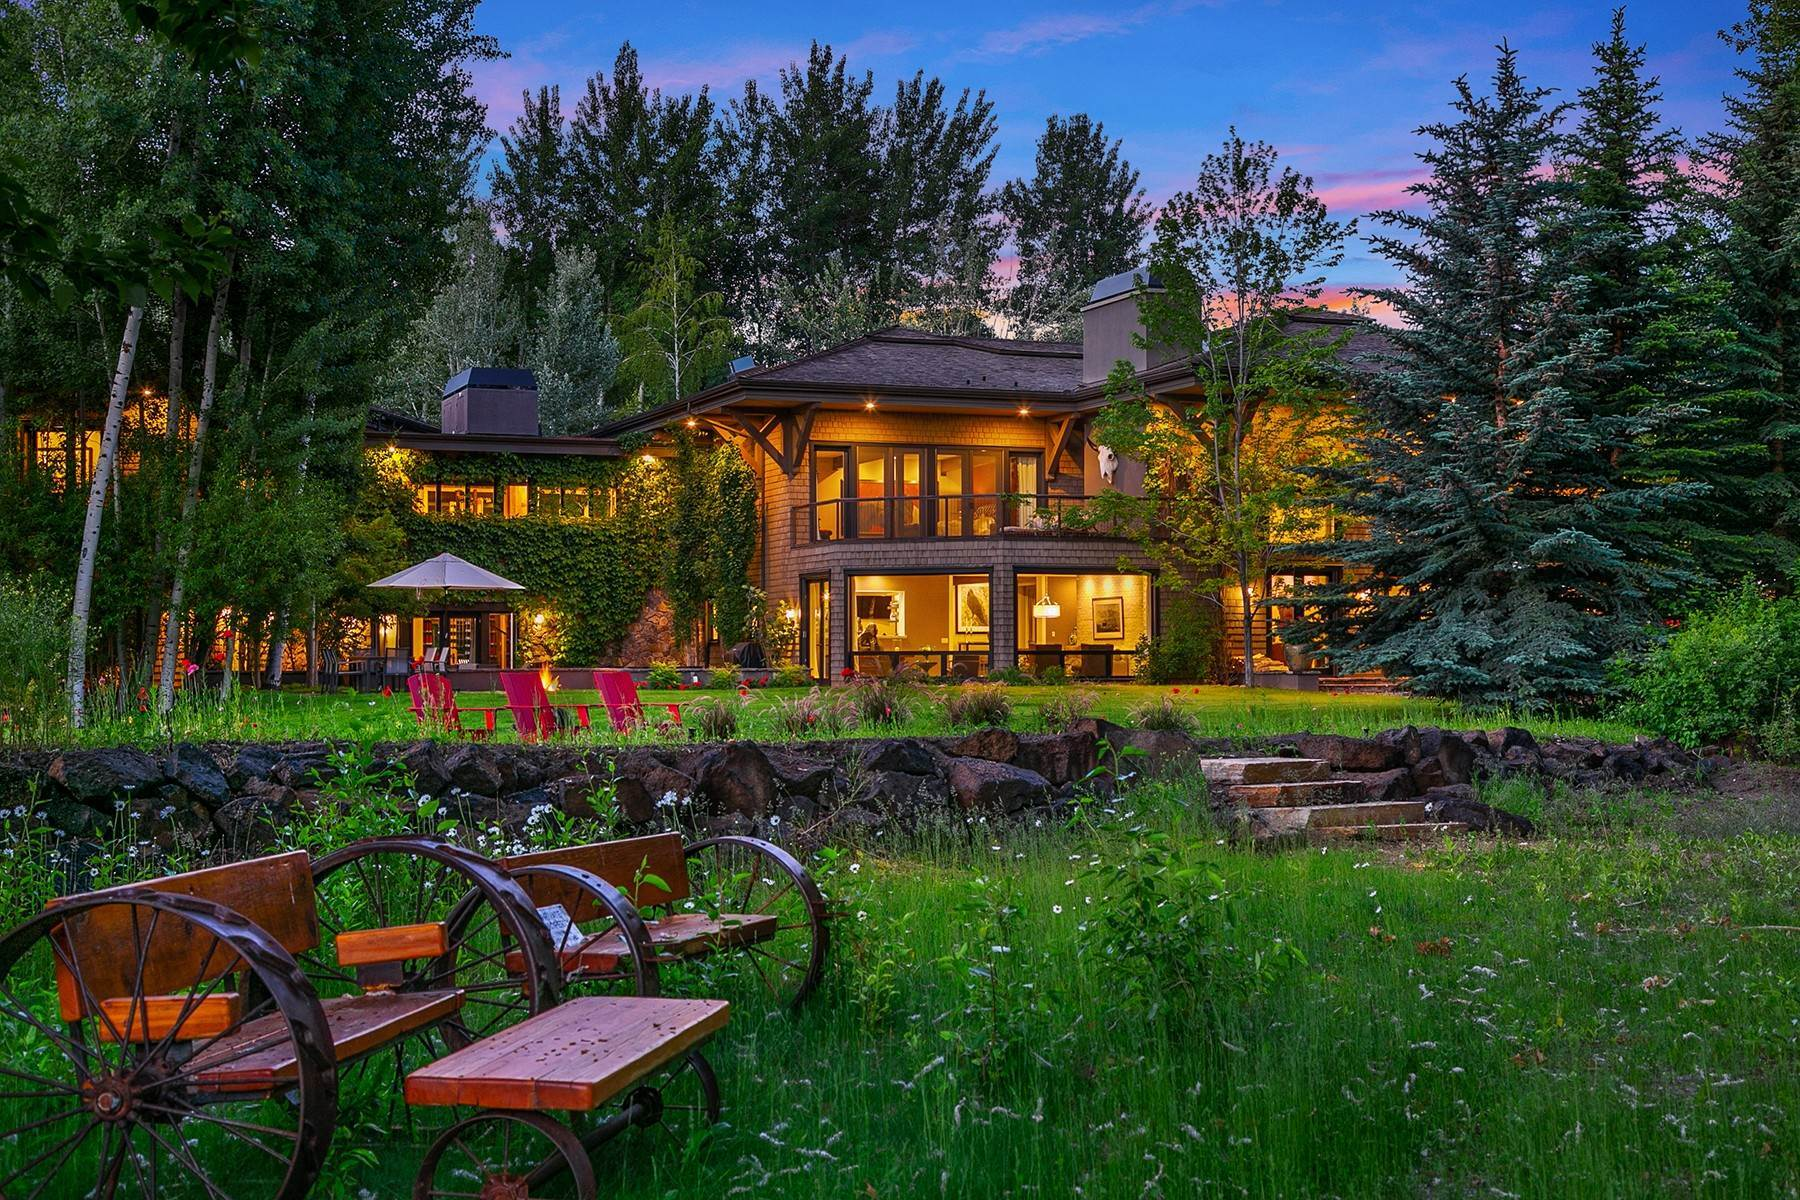 Single Family Homes for Sale at Riverfront Retreat Compound 221 & 225 Sutton Pl Ketchum, Idaho 83340